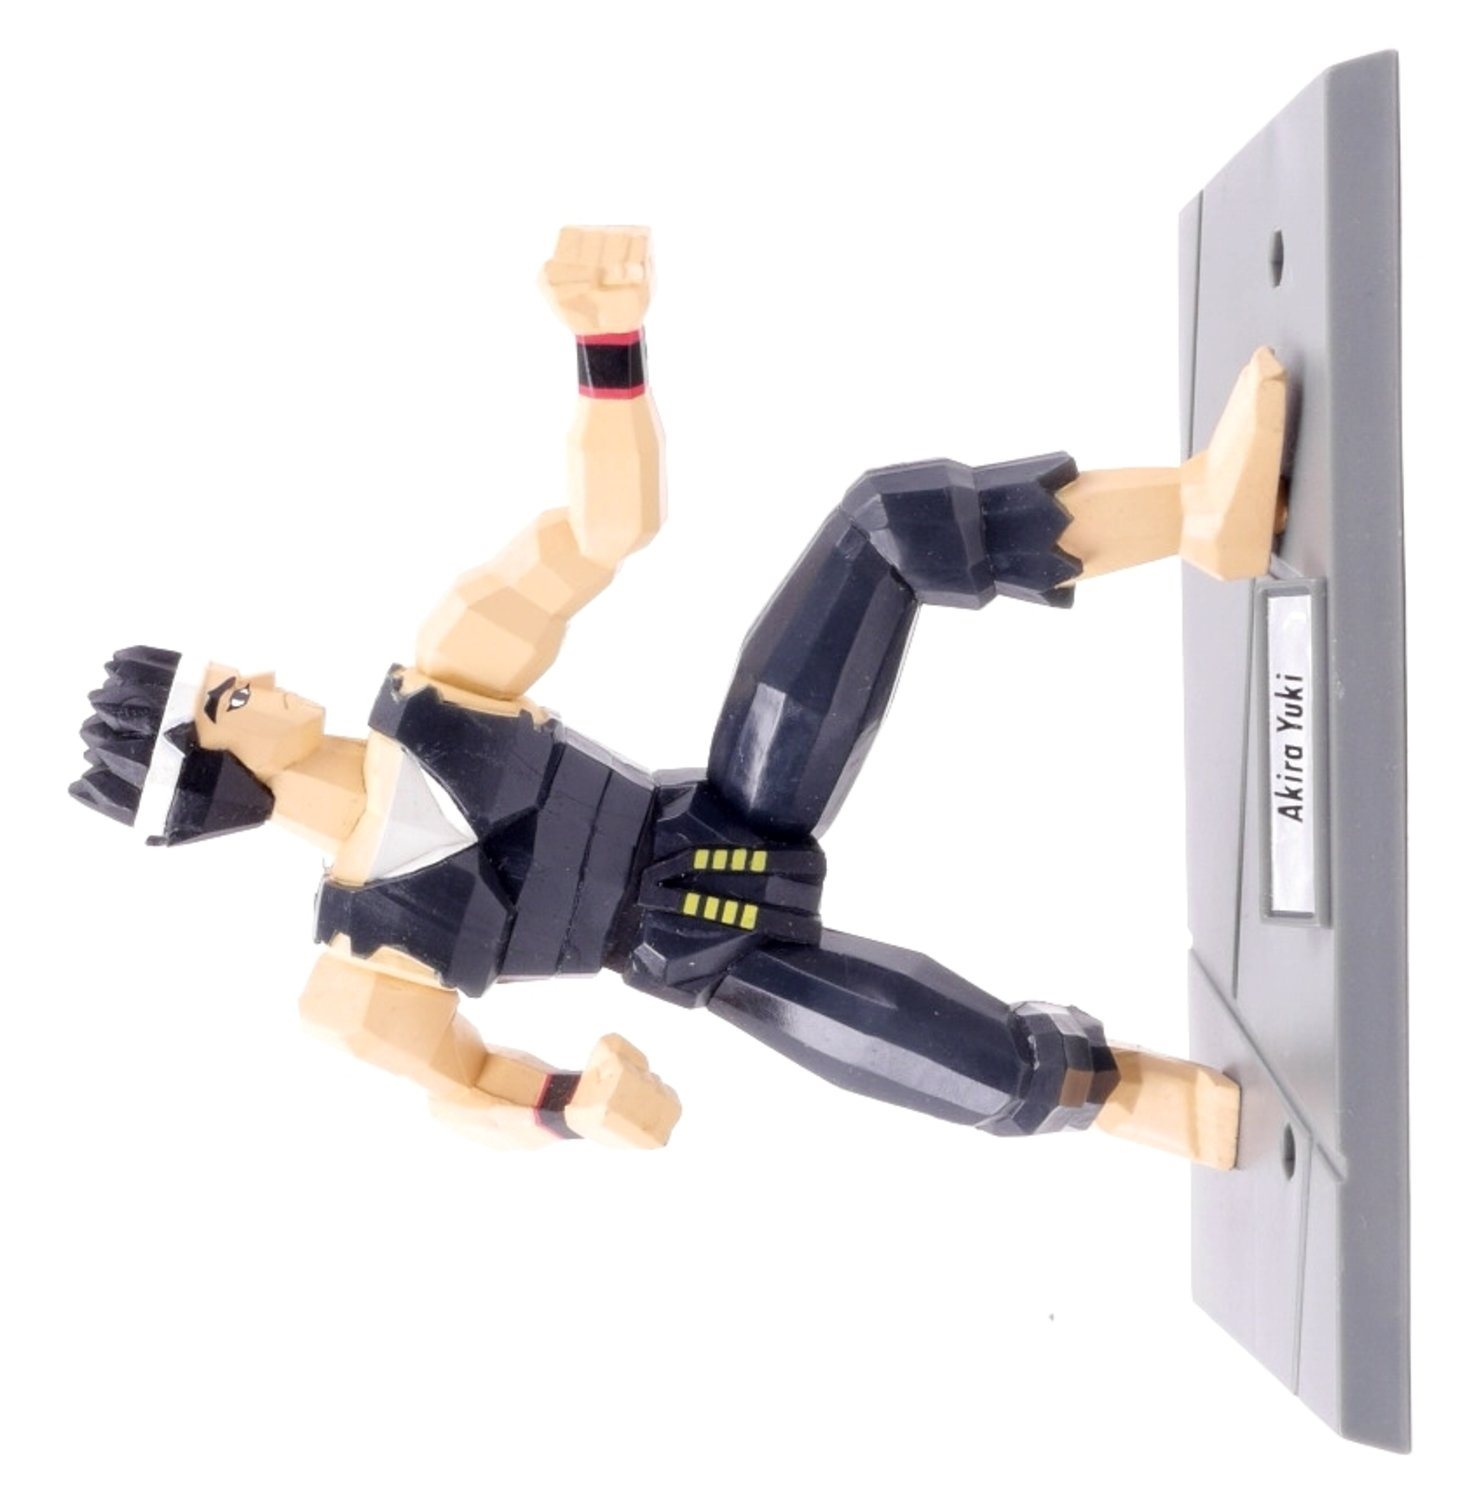 Virtua Fighter 2 Collection Akira Yuki Action Figure (1996) -